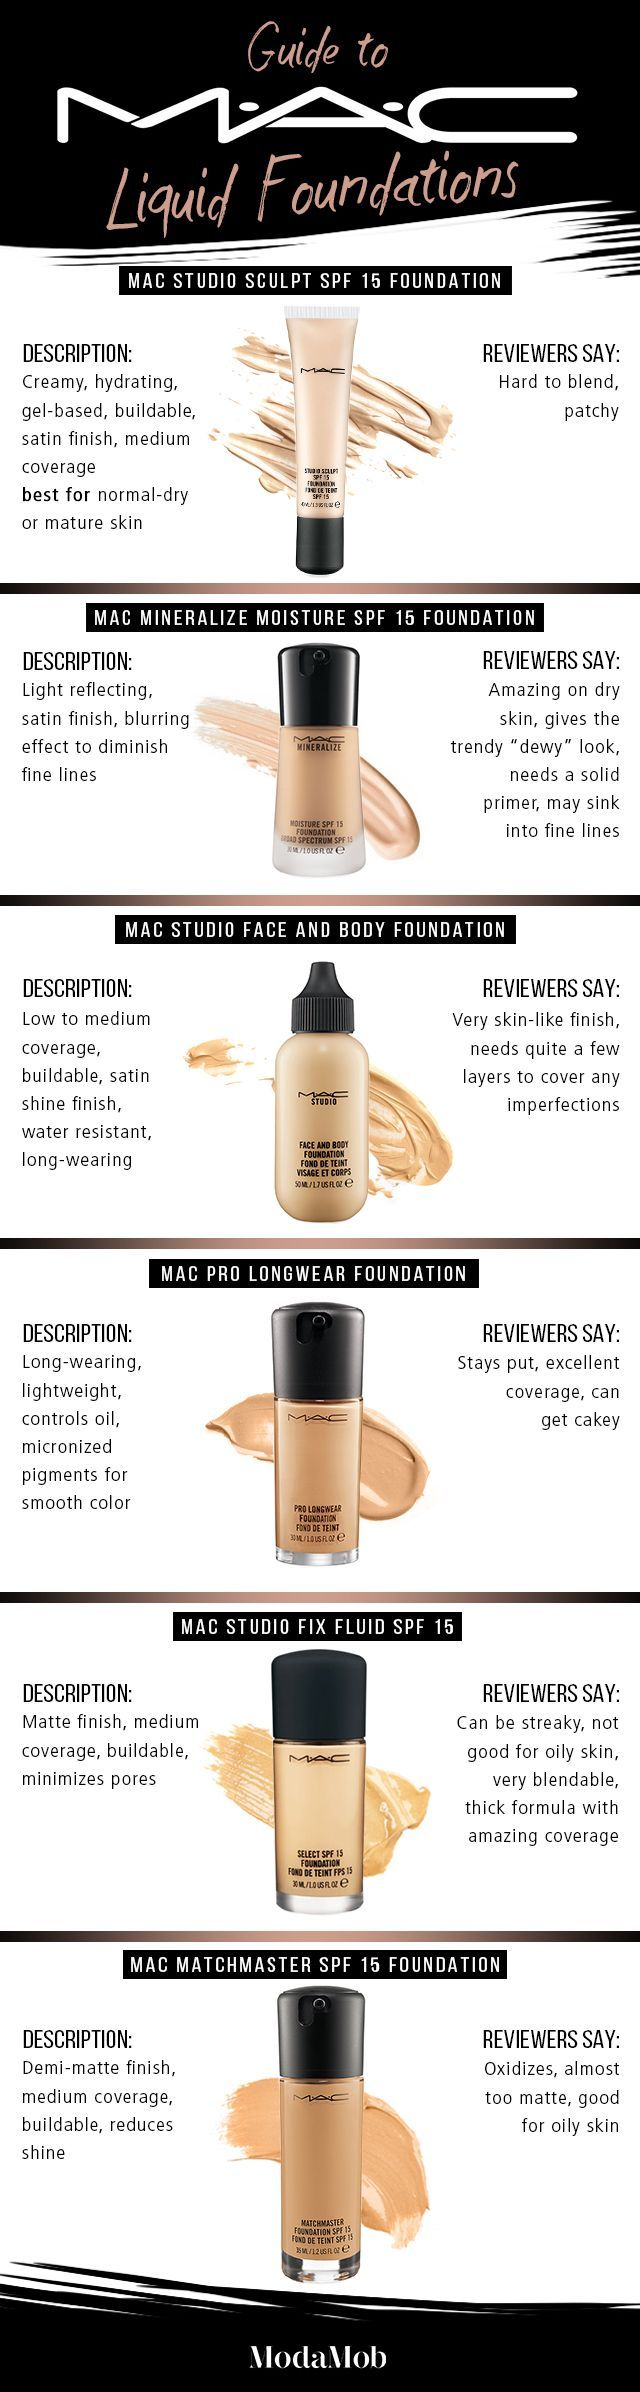 972d2bc495eb4f337c33ff078f147259 - maquillaje mac mejores equipos